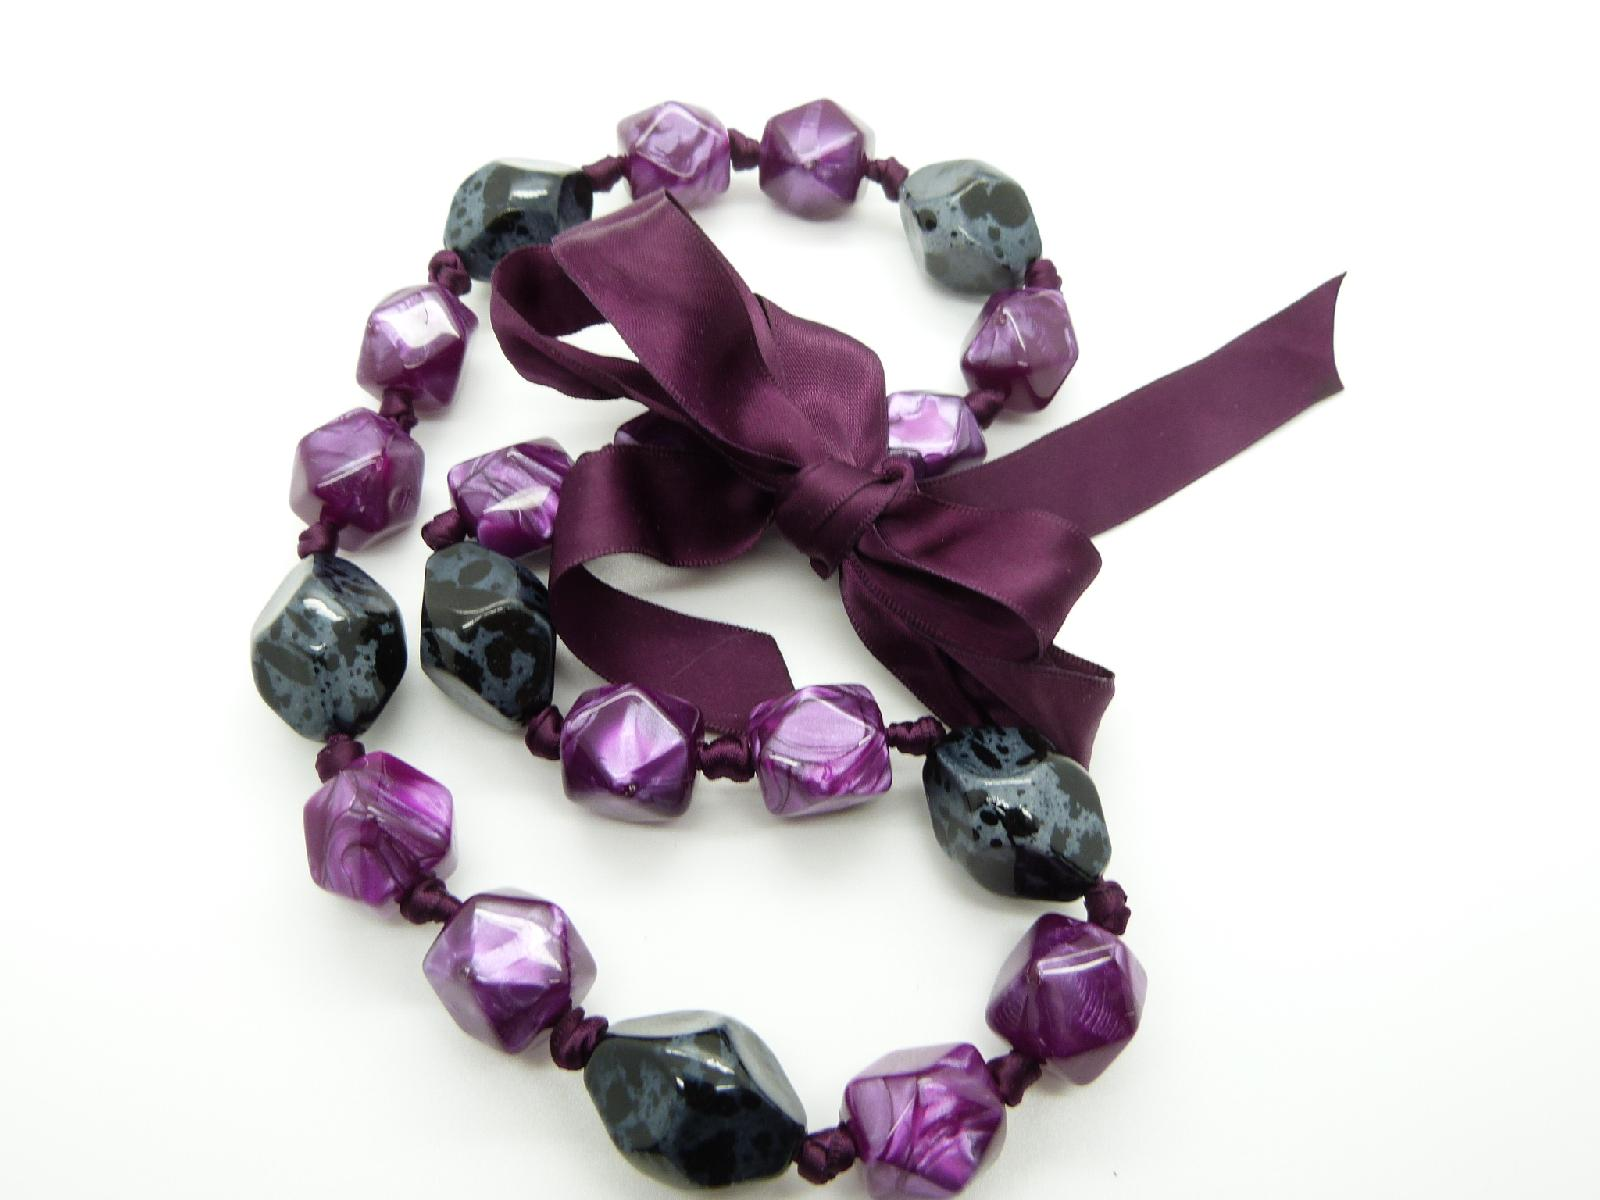 Chunky Grey and Pink Purple Plastic Faceted Bead Necklace with Ribbon Tie